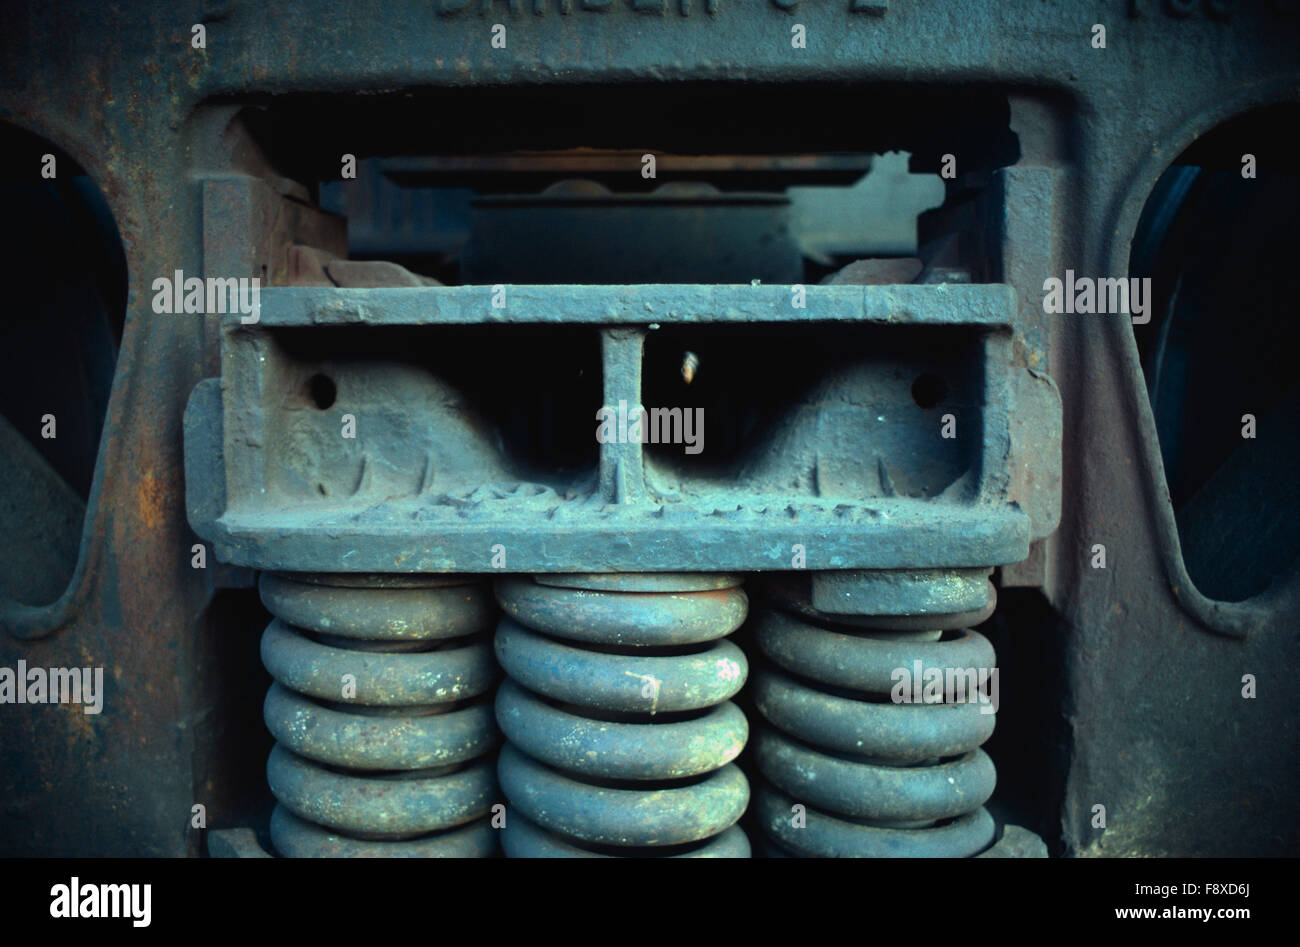 industrial coil - Stock Image